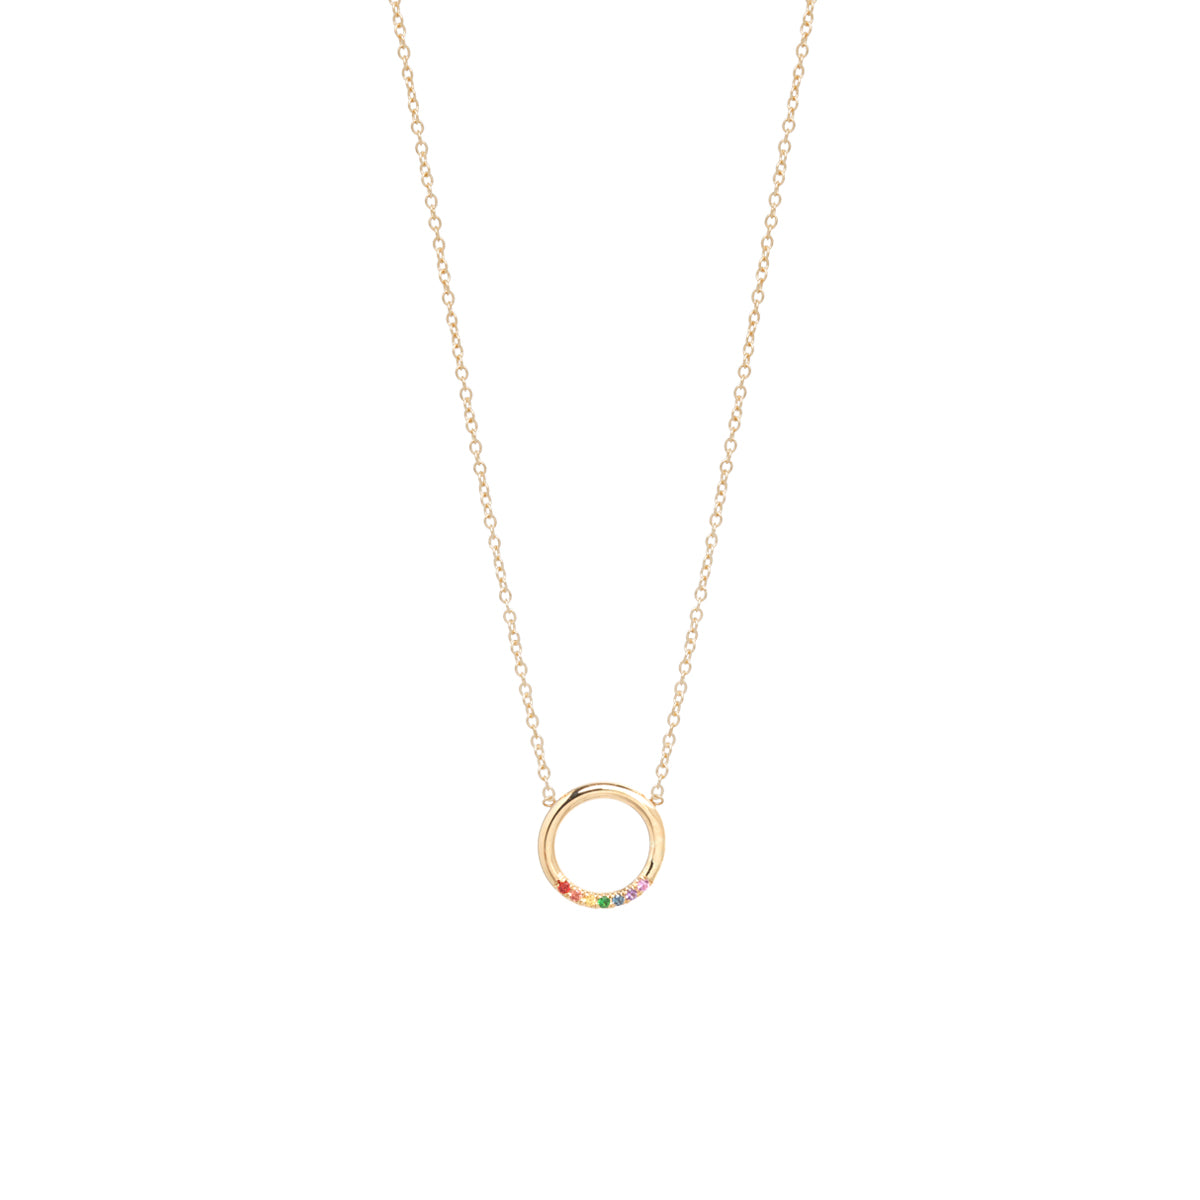 14k small thick circle necklace with 7 rainbow sapphires